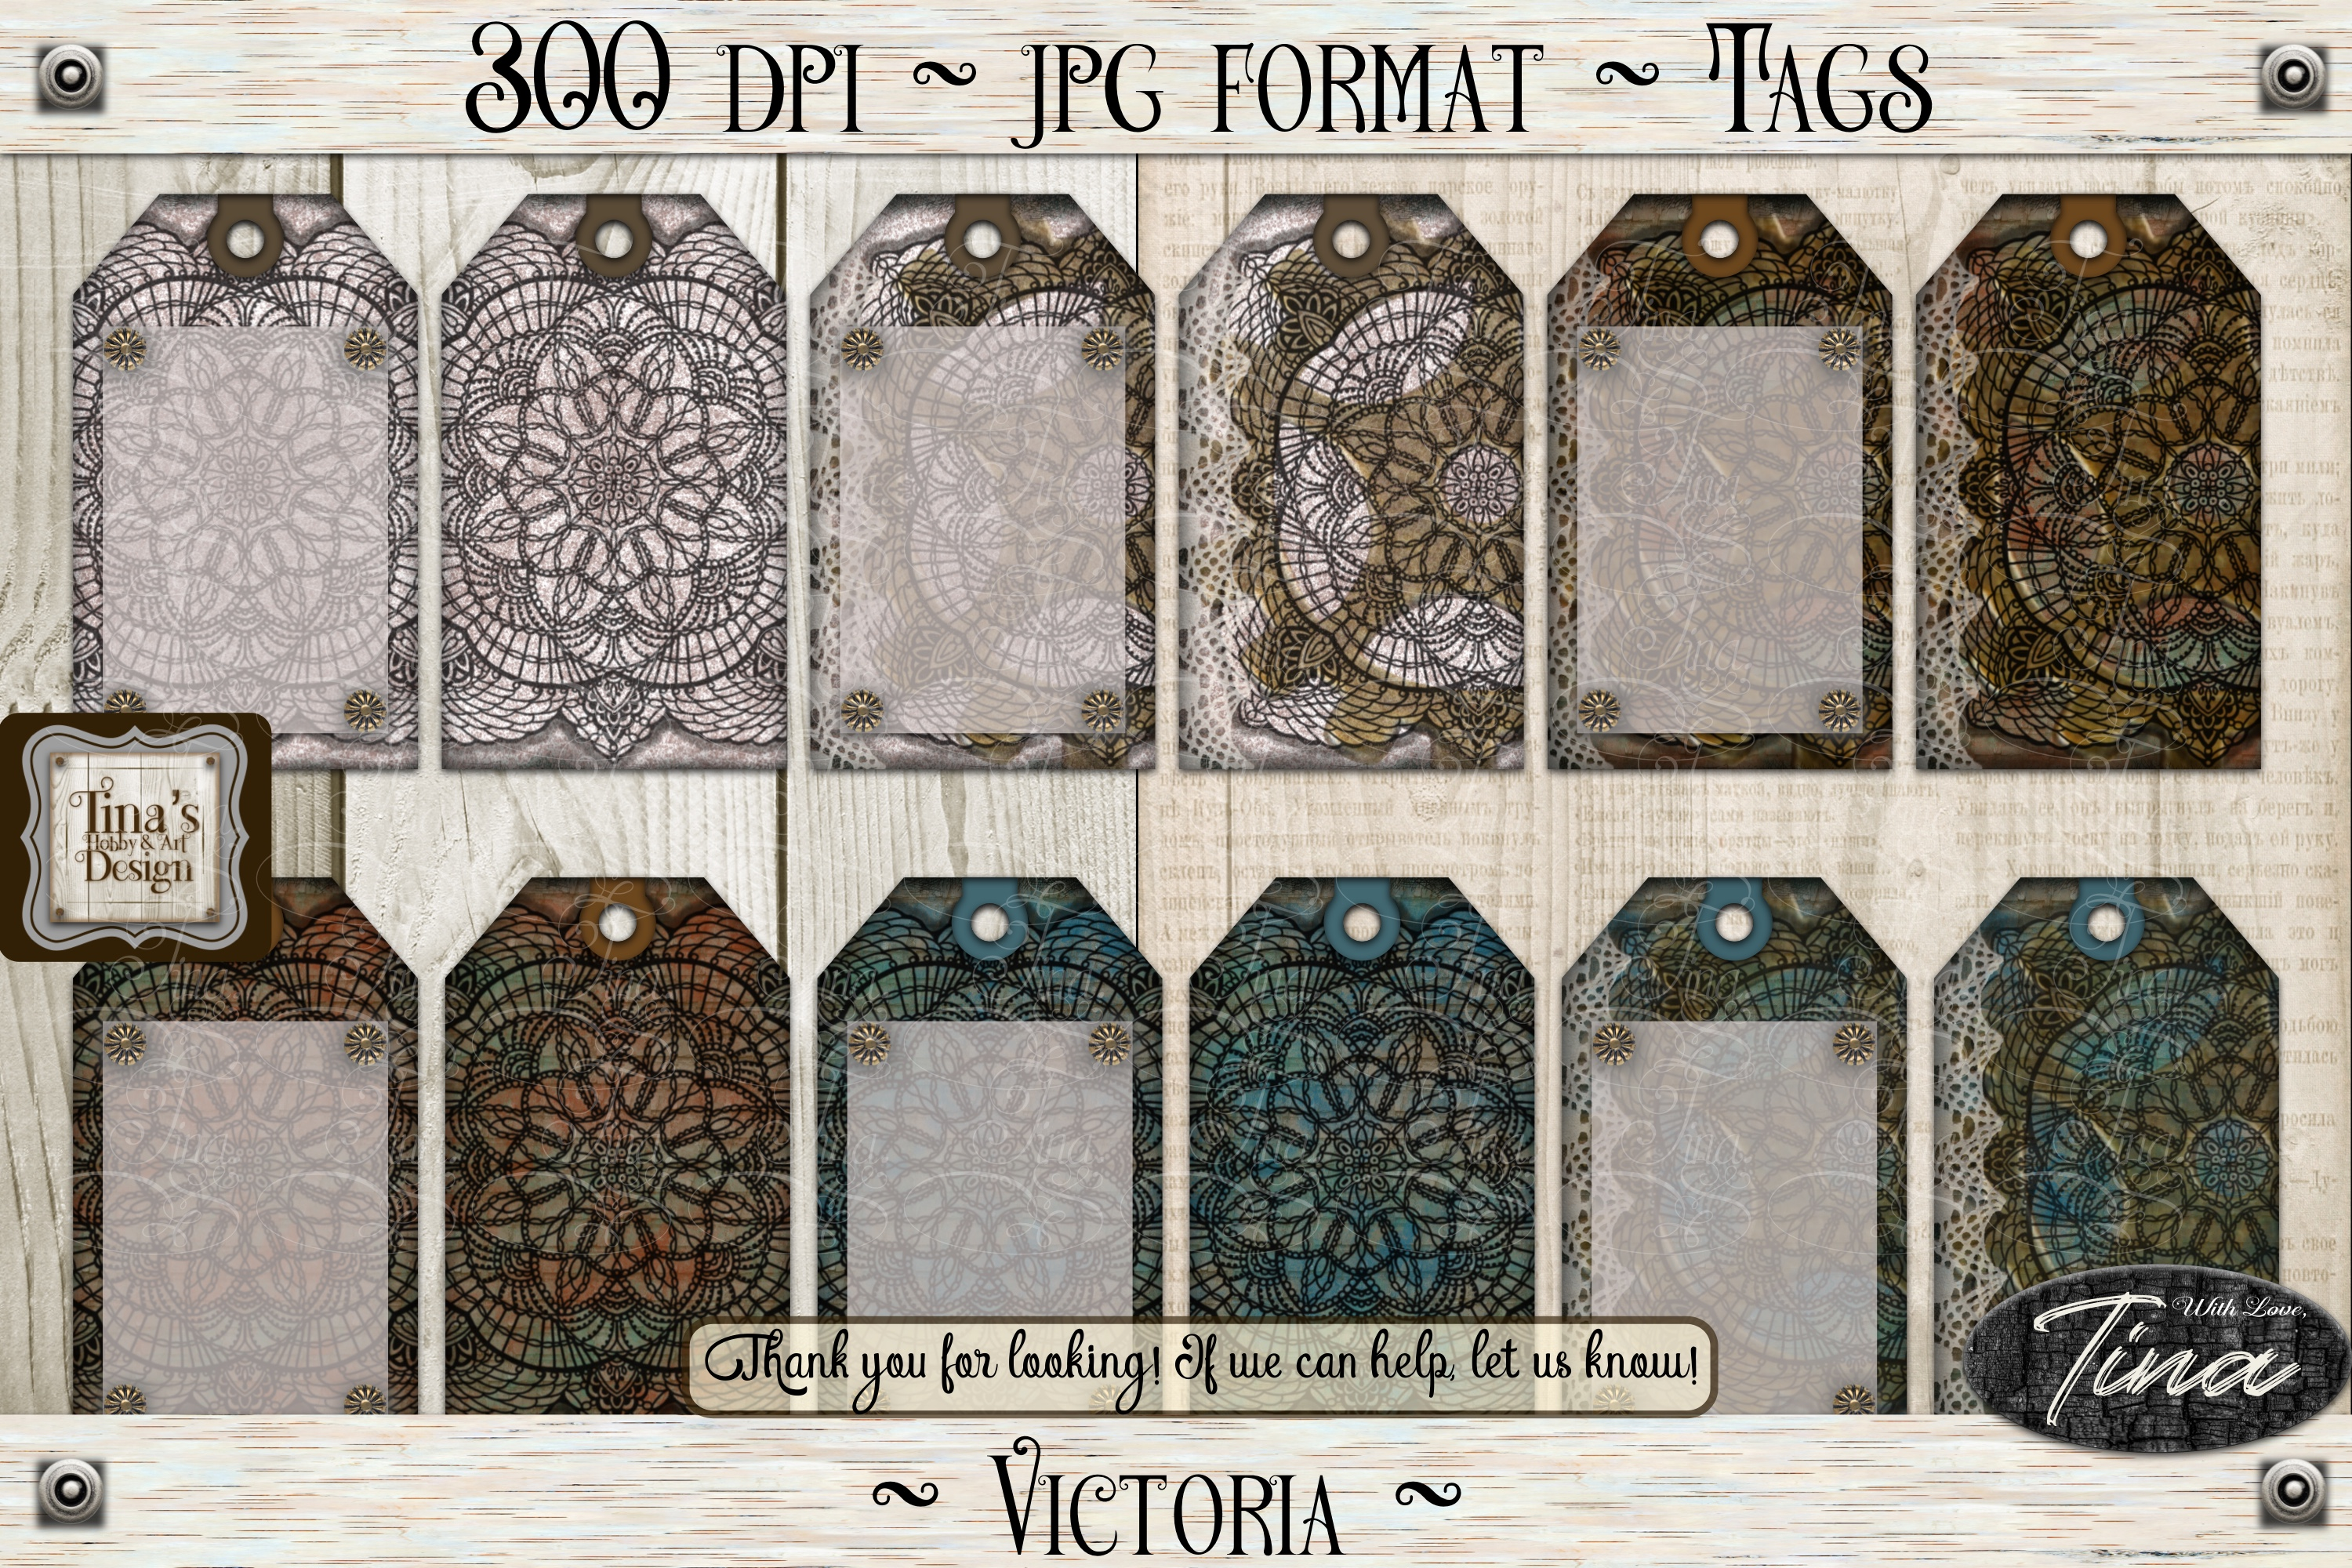 Victoria Steampunk Lace Doily Paper/Tag Collection 102618 example image 3